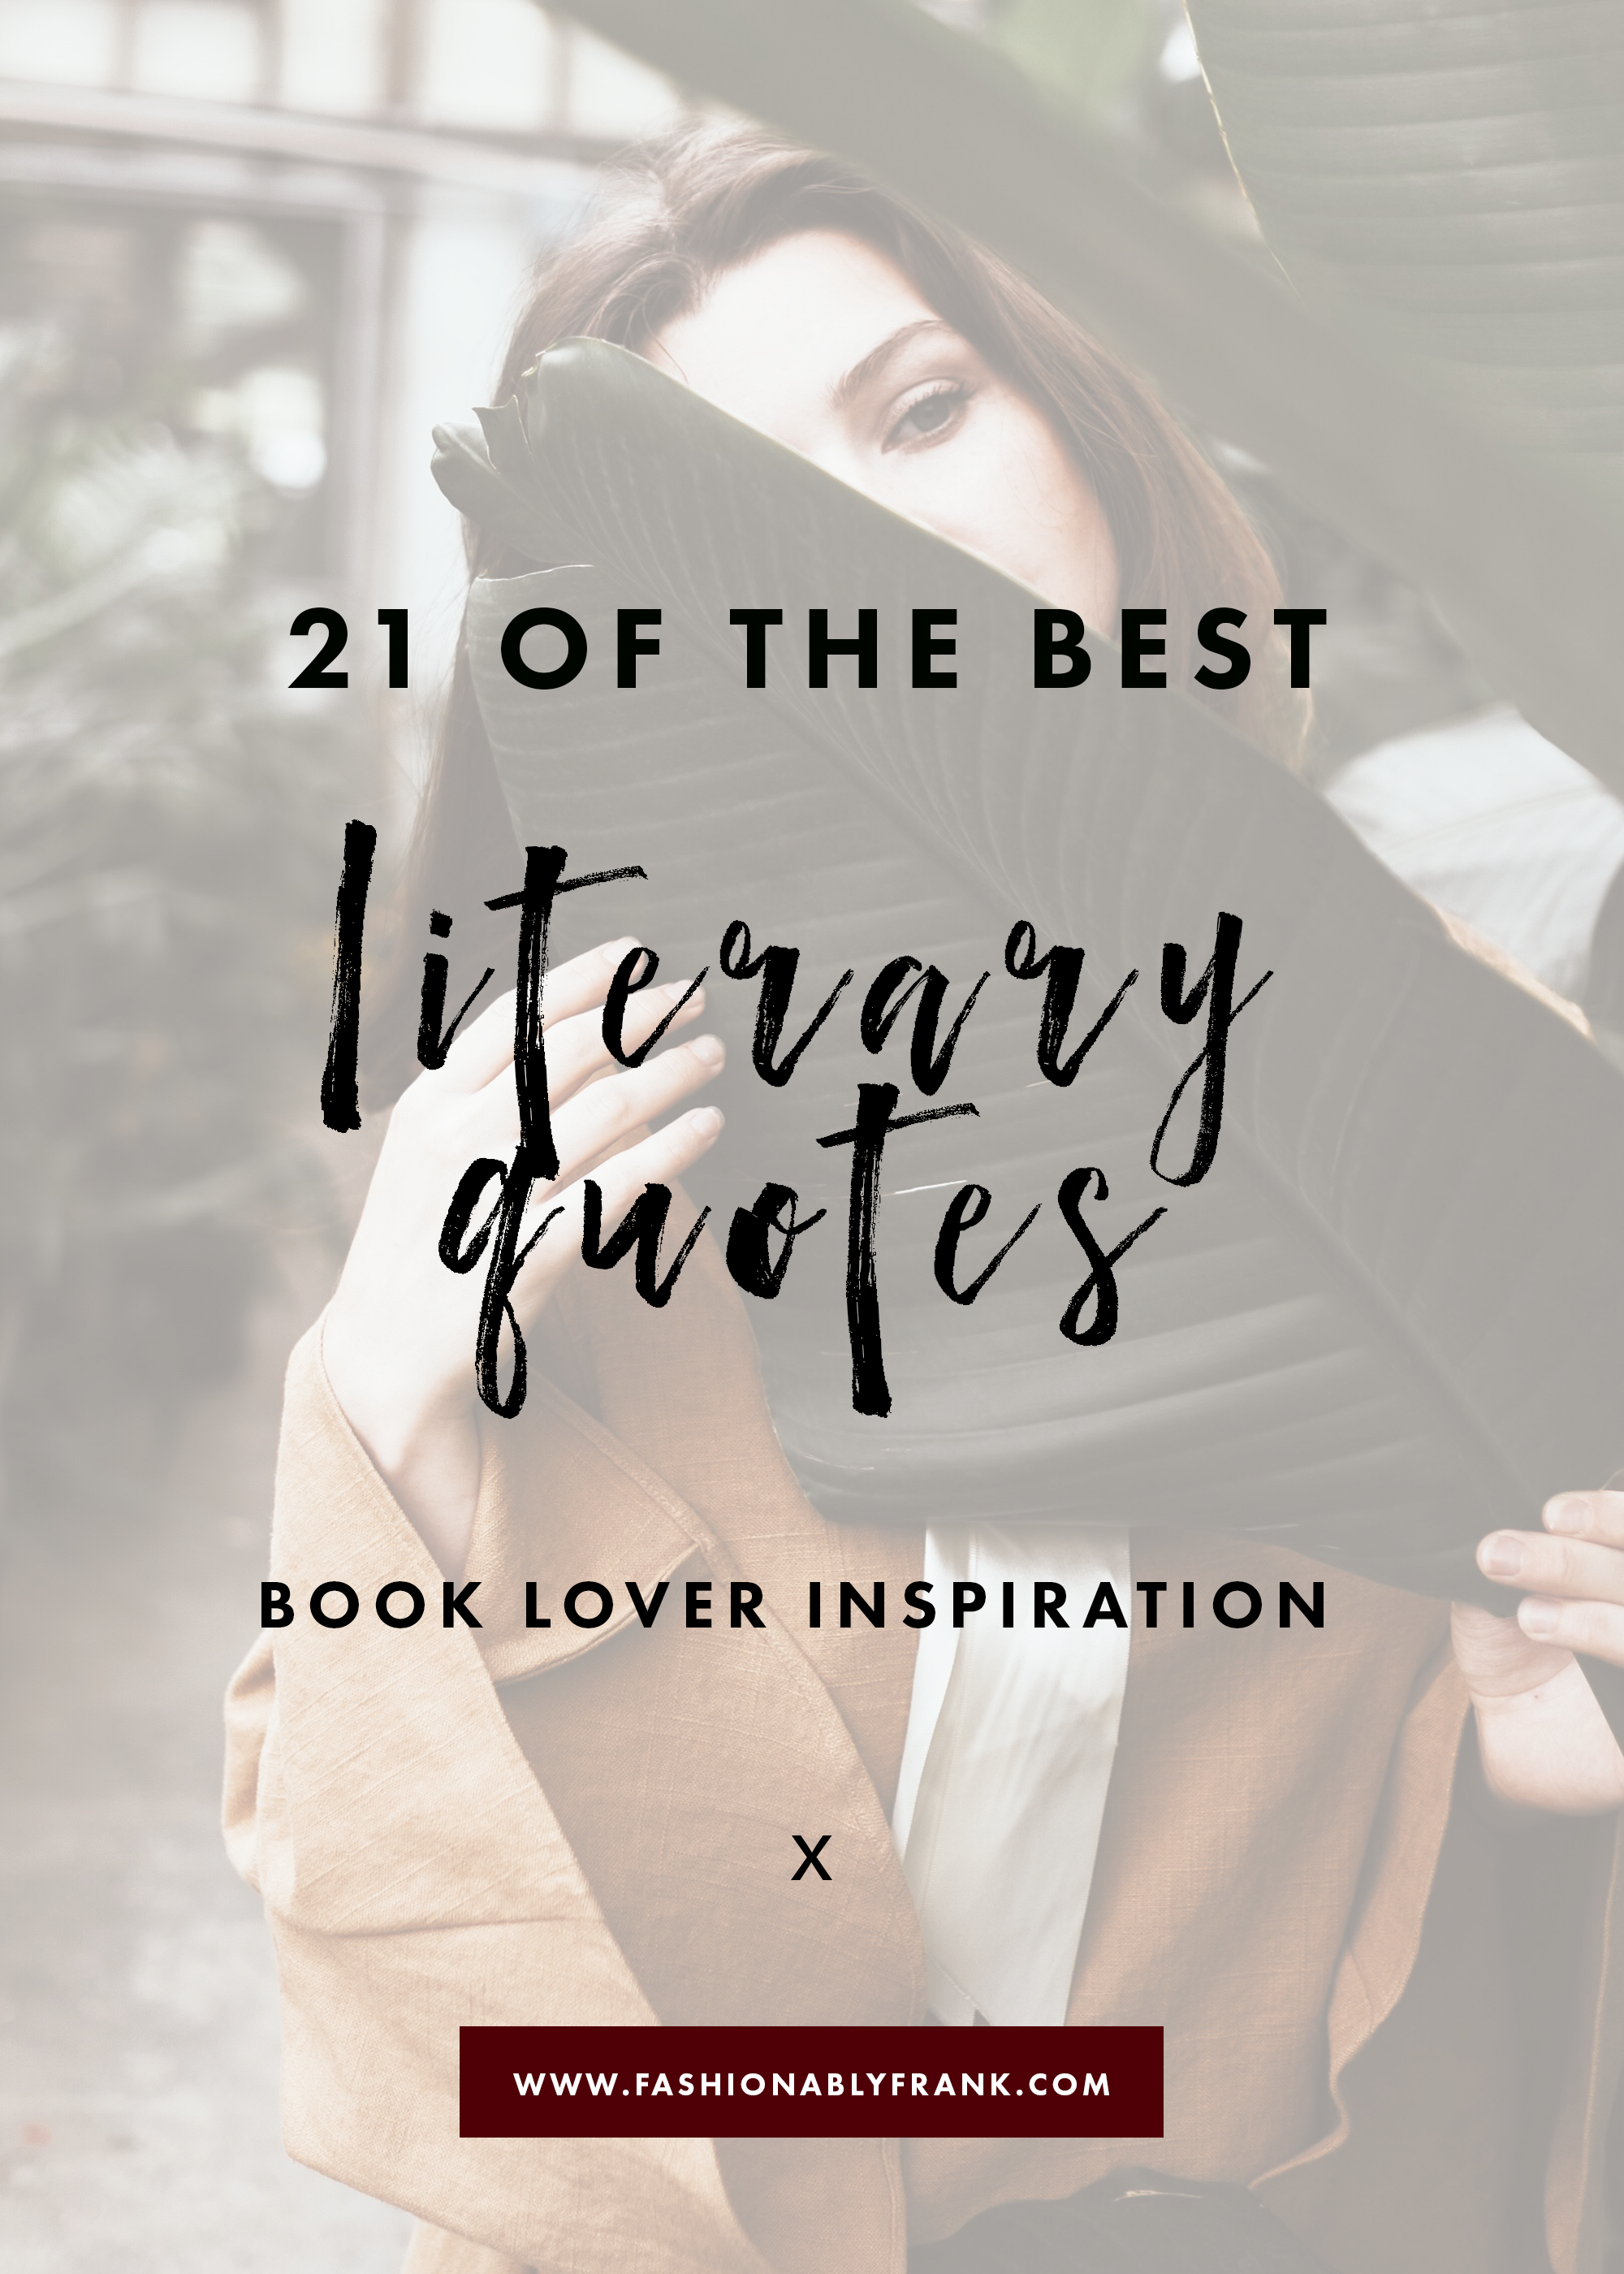 The Best Literary Quotes